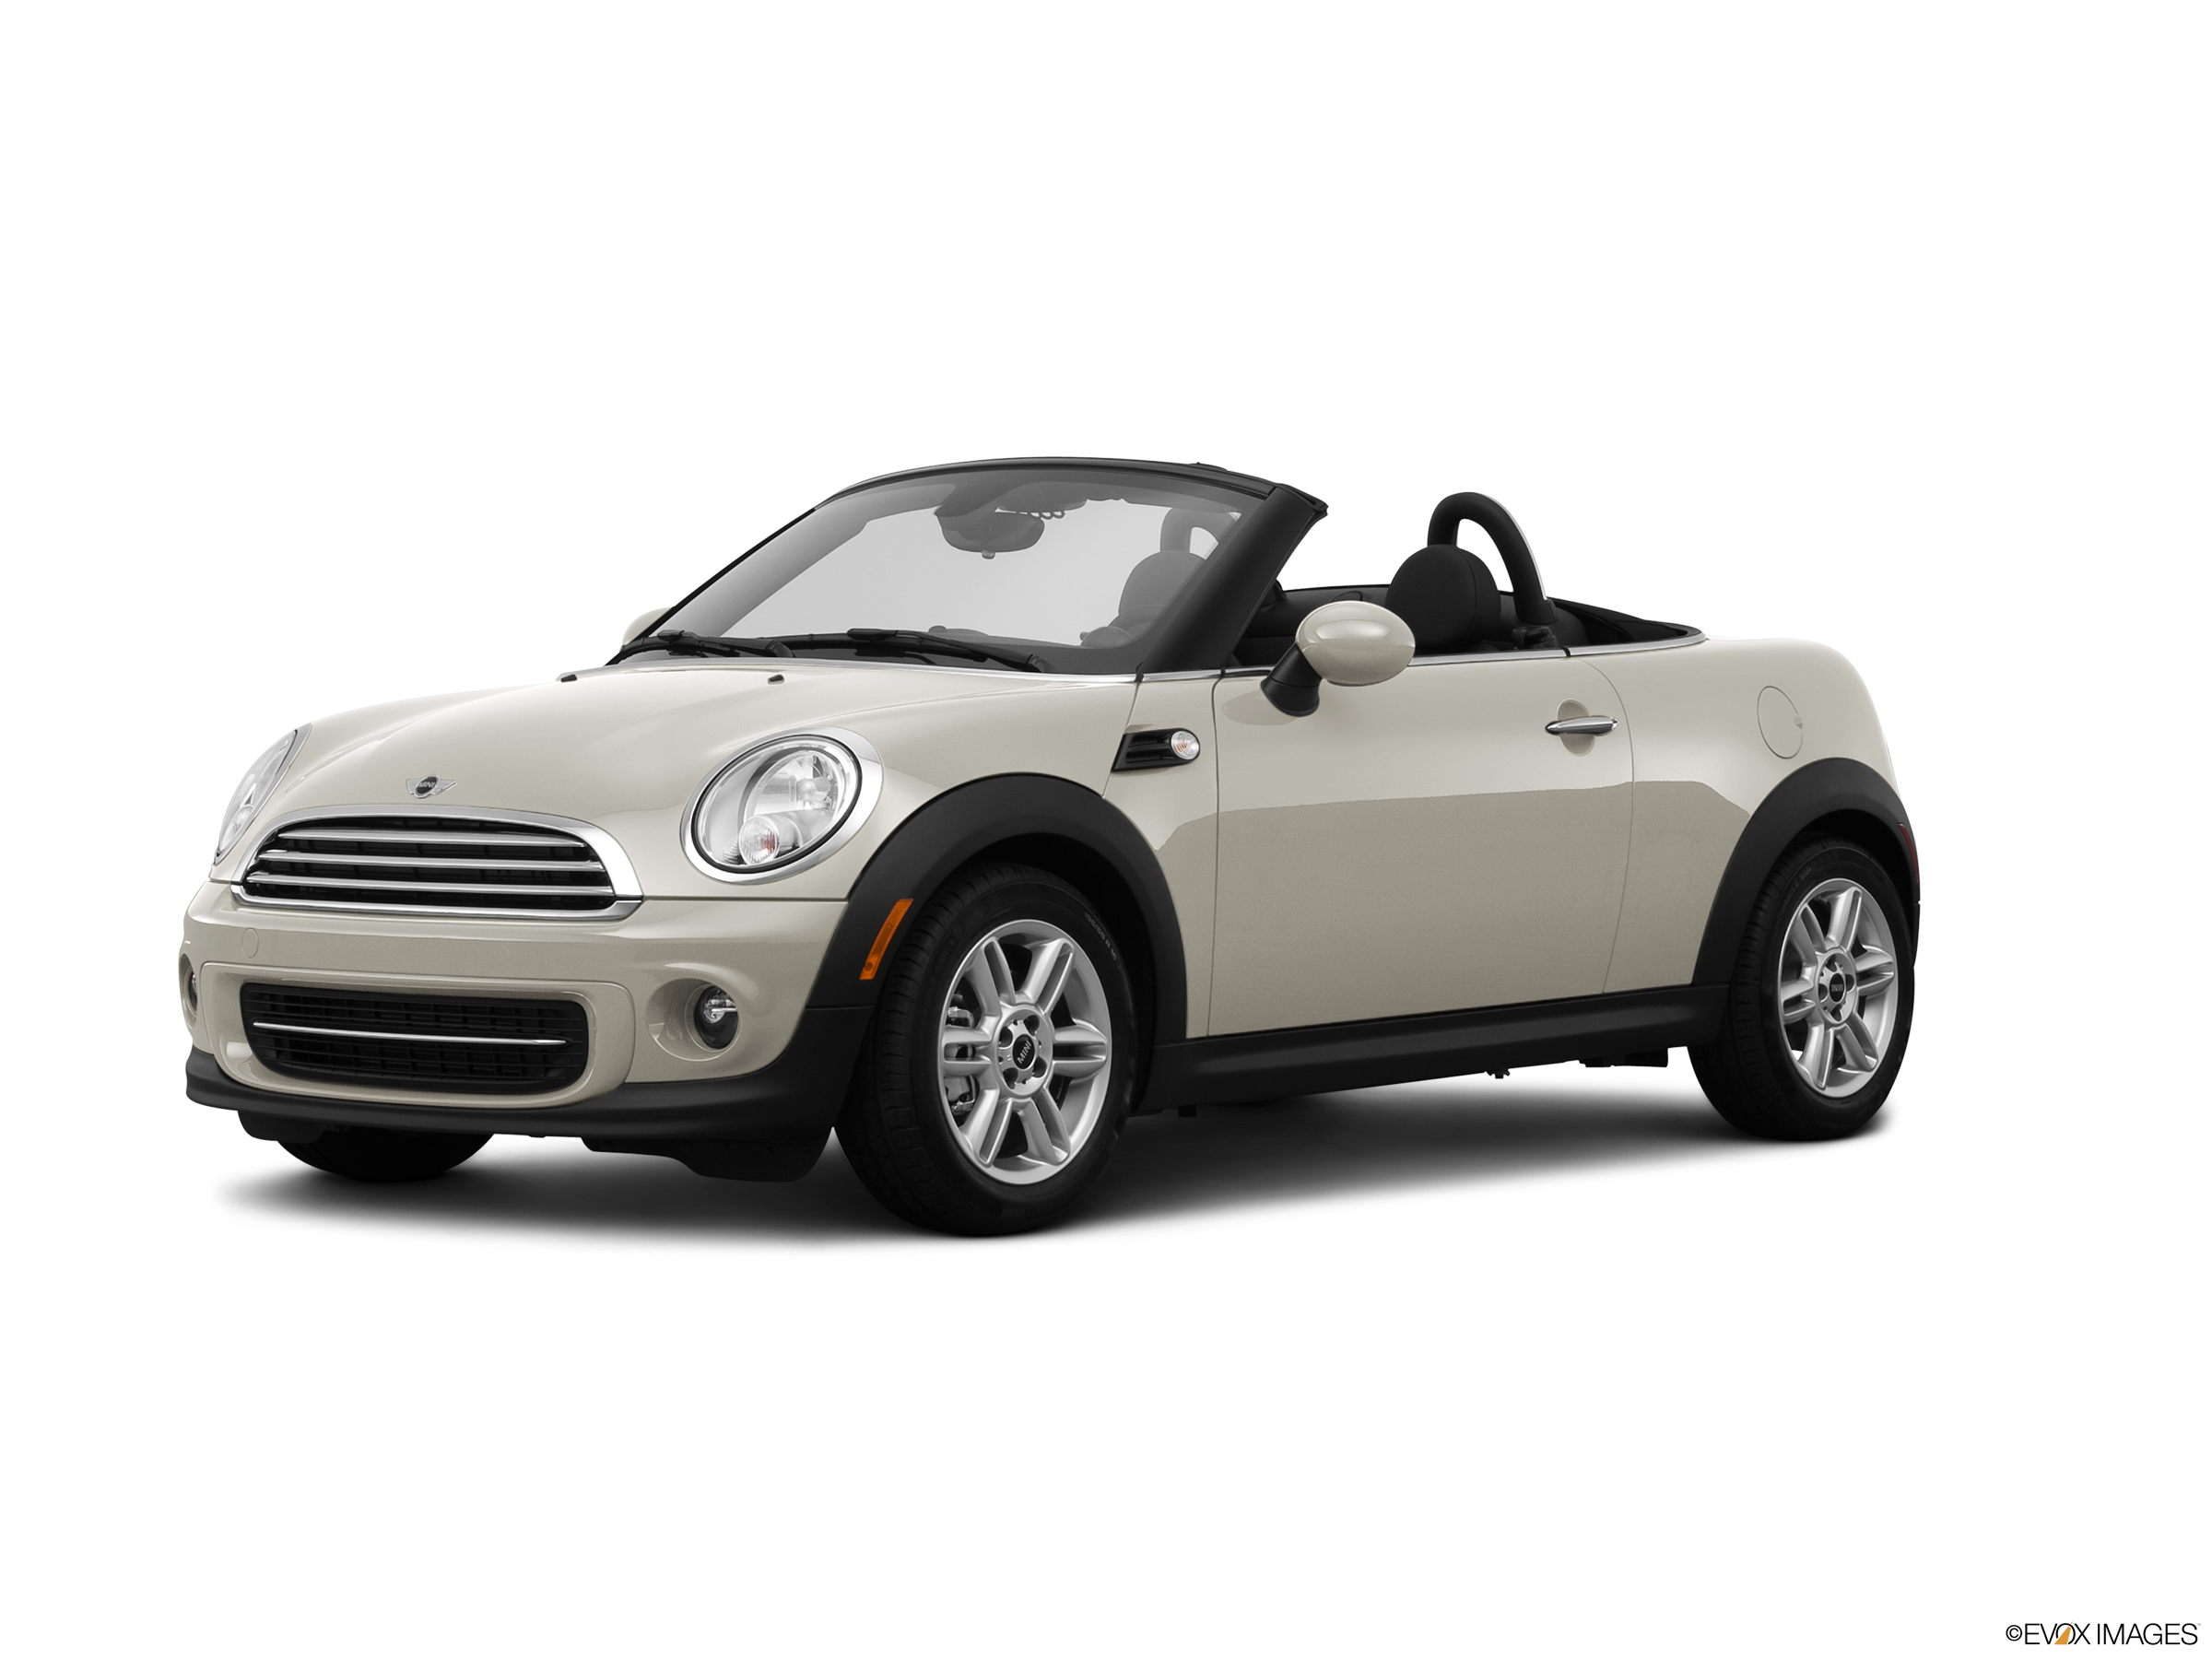 Used 200 MINI Roadster Cooper Roadster 20D Prices   Kelley Blue Book